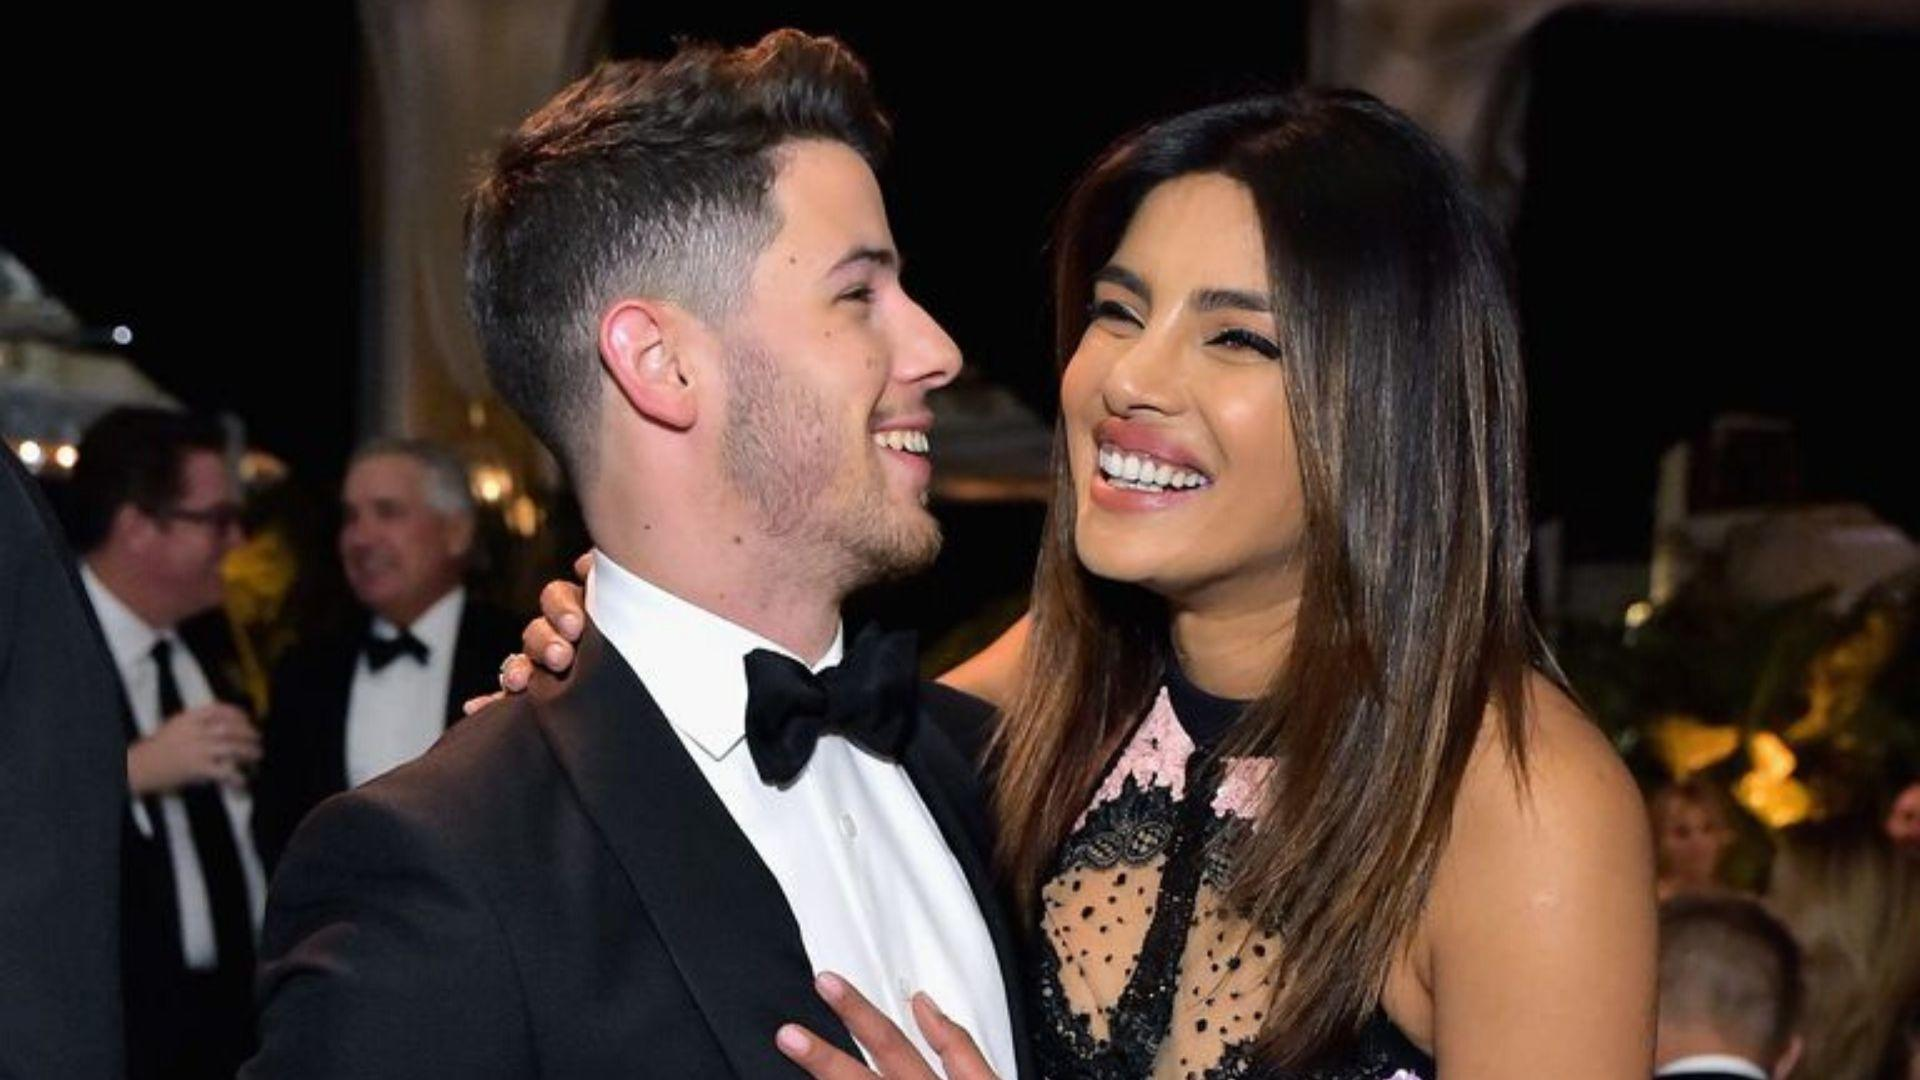 Priyanka Chopra Just Gave Nick Jonas The Sweetest Anniversary Gift